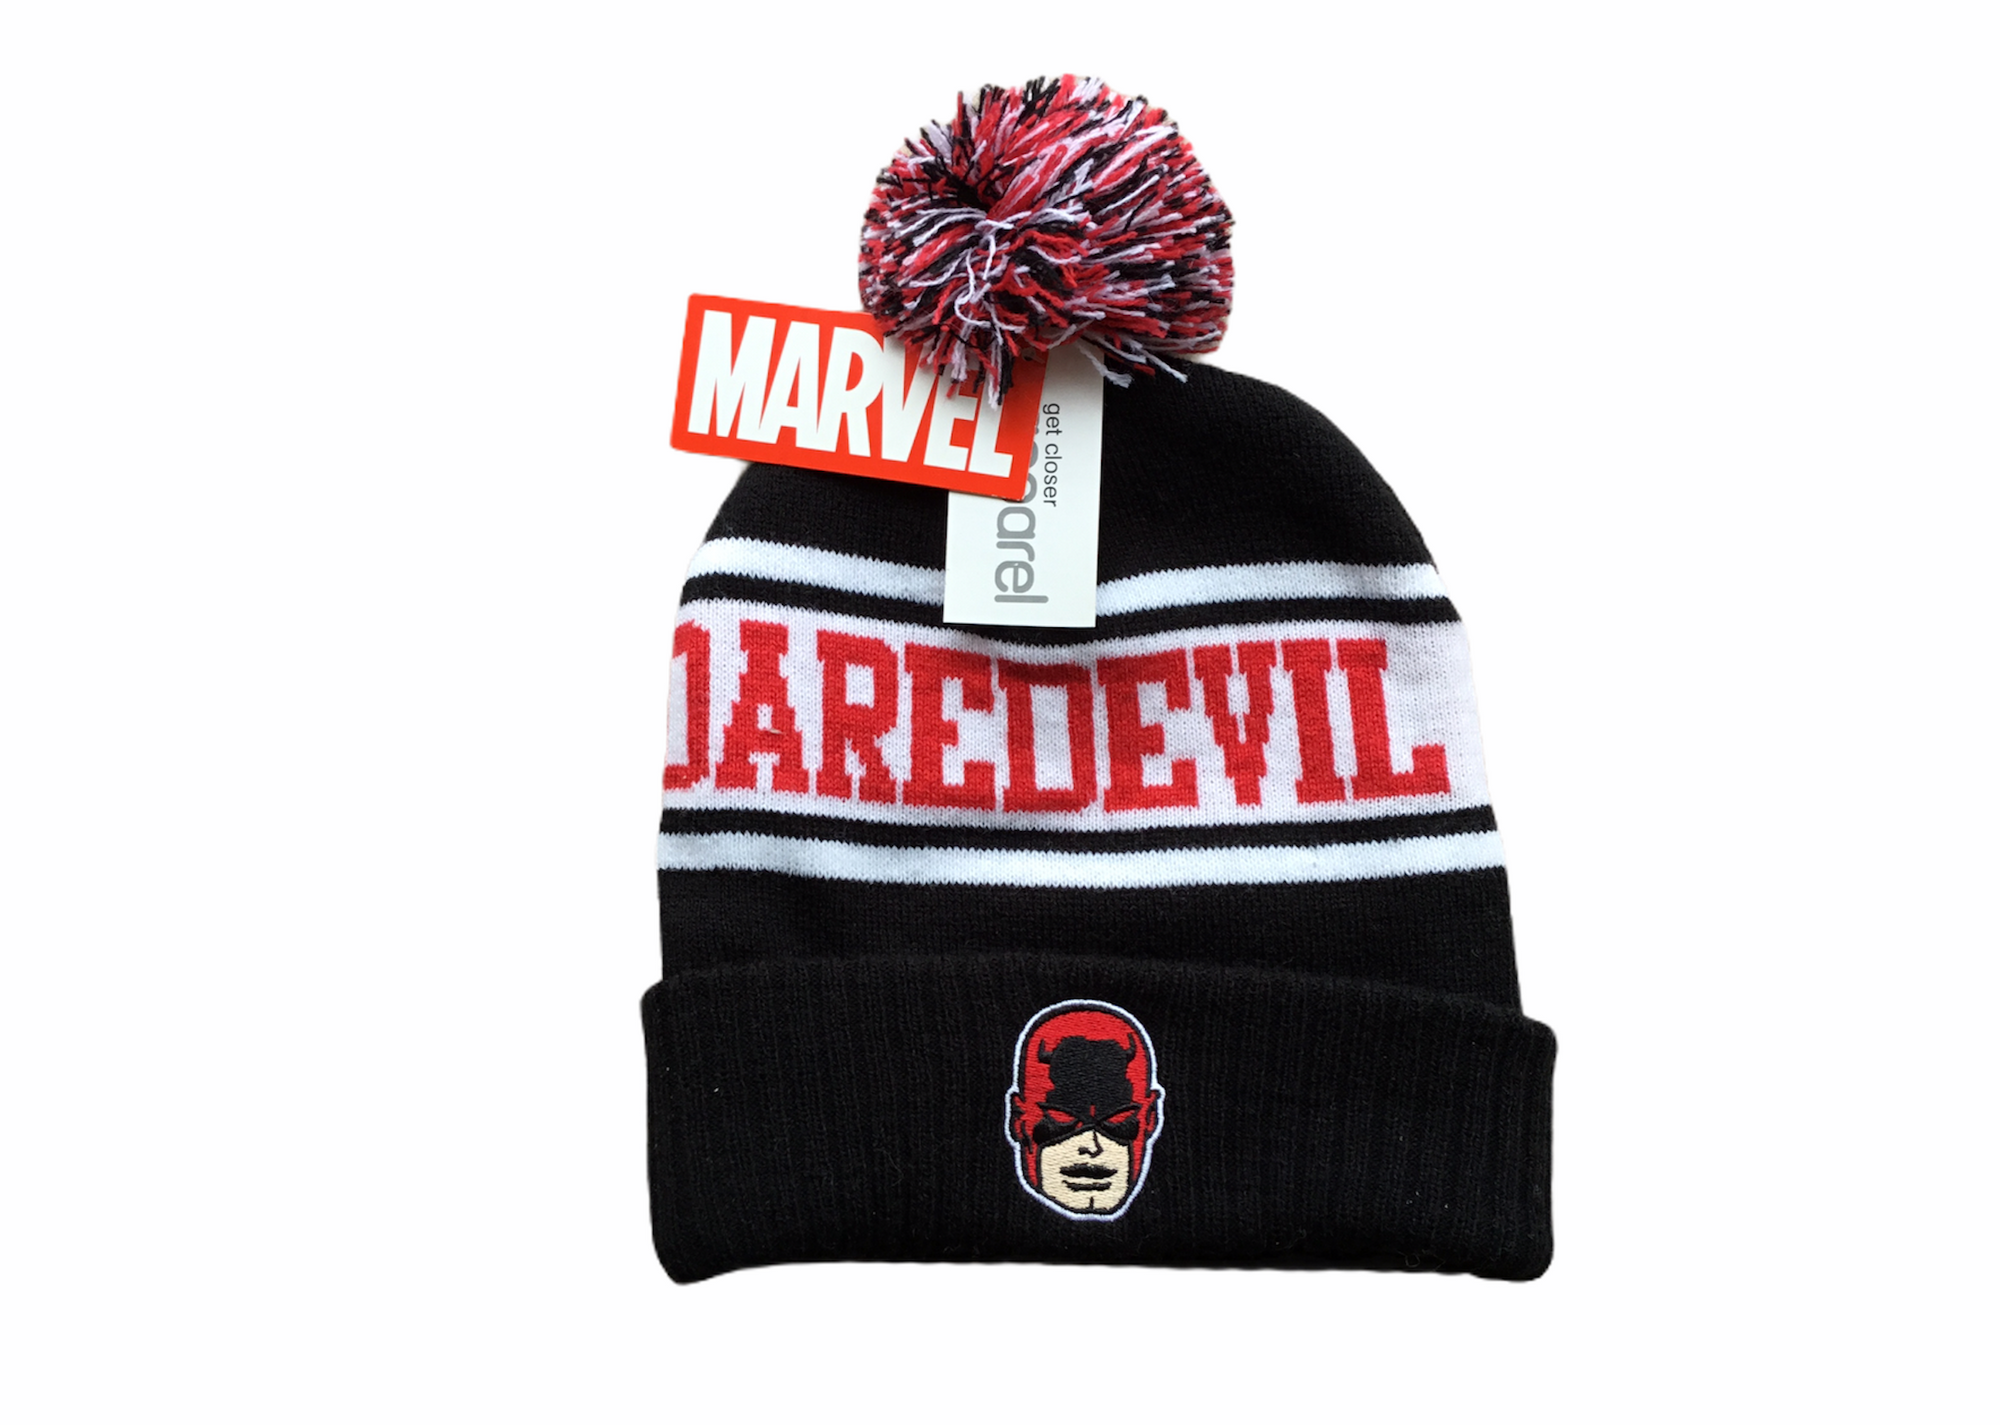 Daredevil Hat Black Pom One Size Fits All Tuque